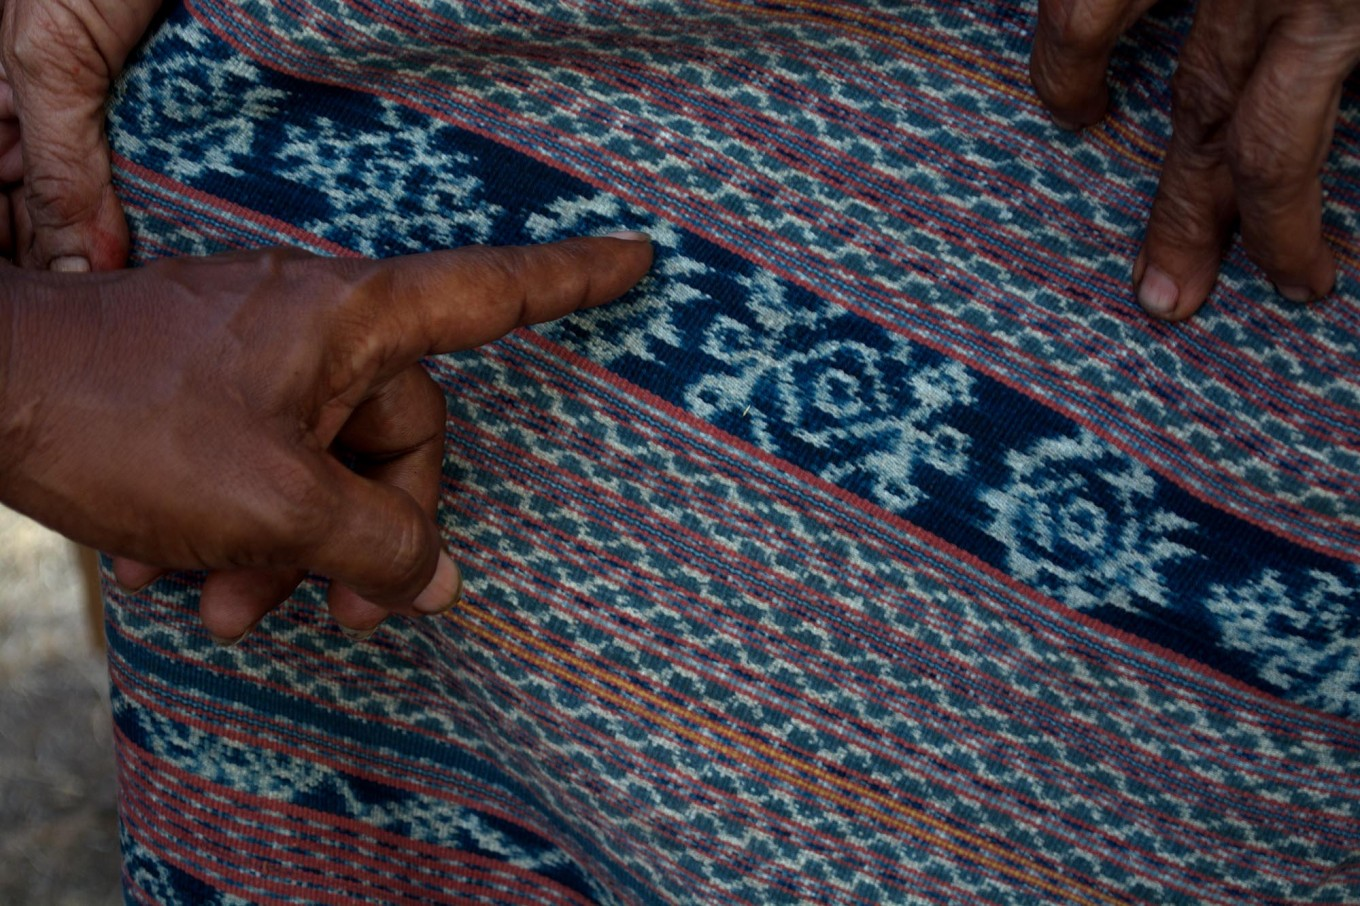 A Sikka woman points to one of the sacred symbols in the traditional ikat cloths. The motif represents women's fertility. JP/Intan Tanjung